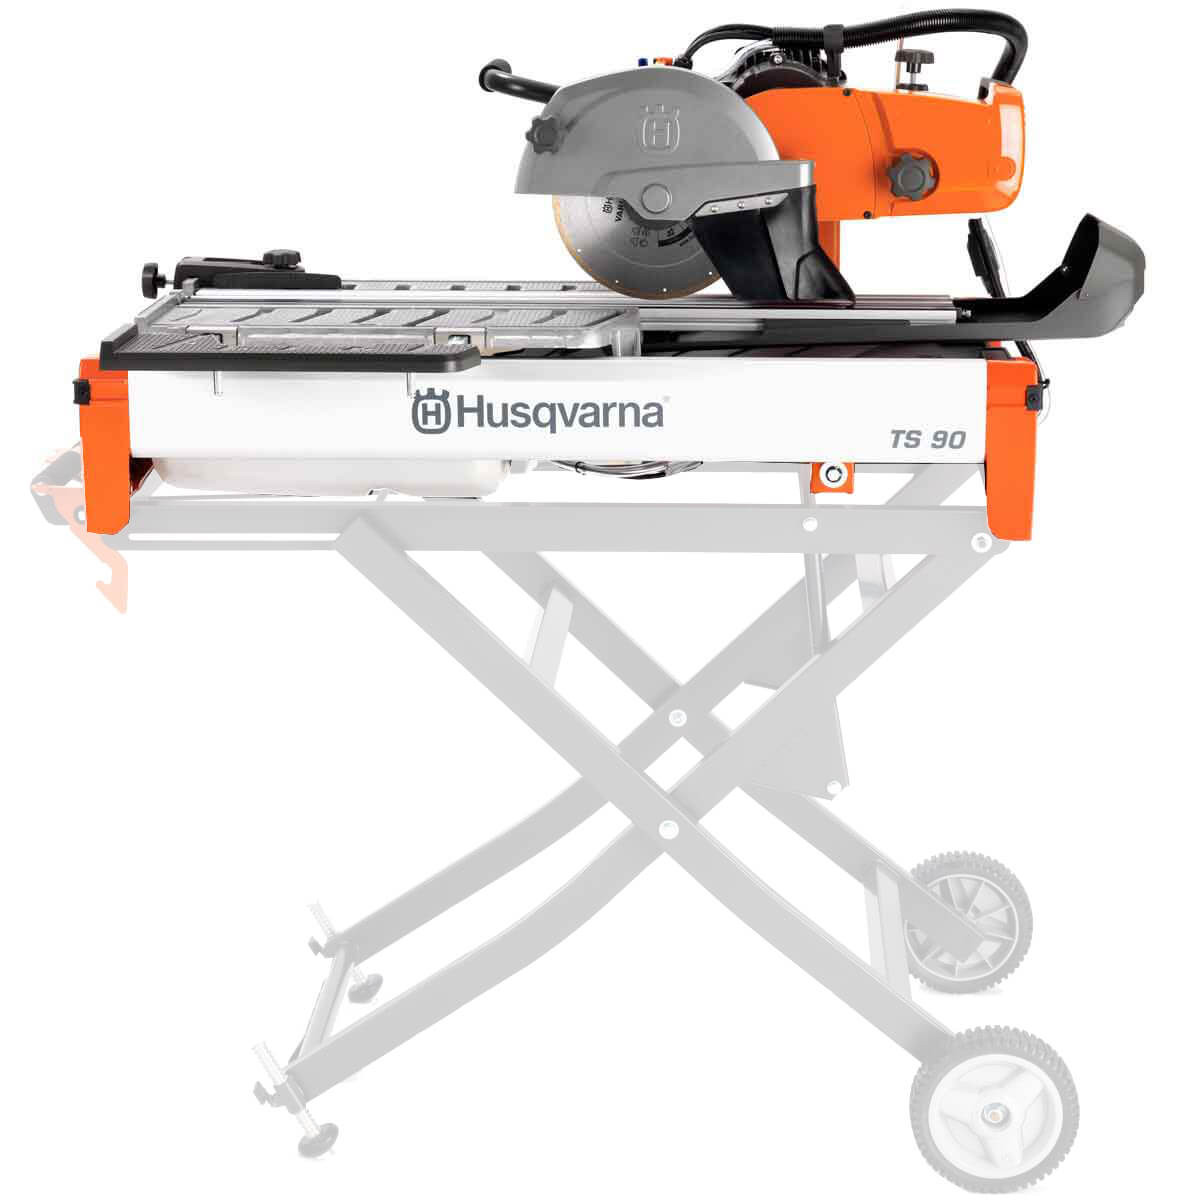 Husqvarna TS 90 Wet Tile Saw 3